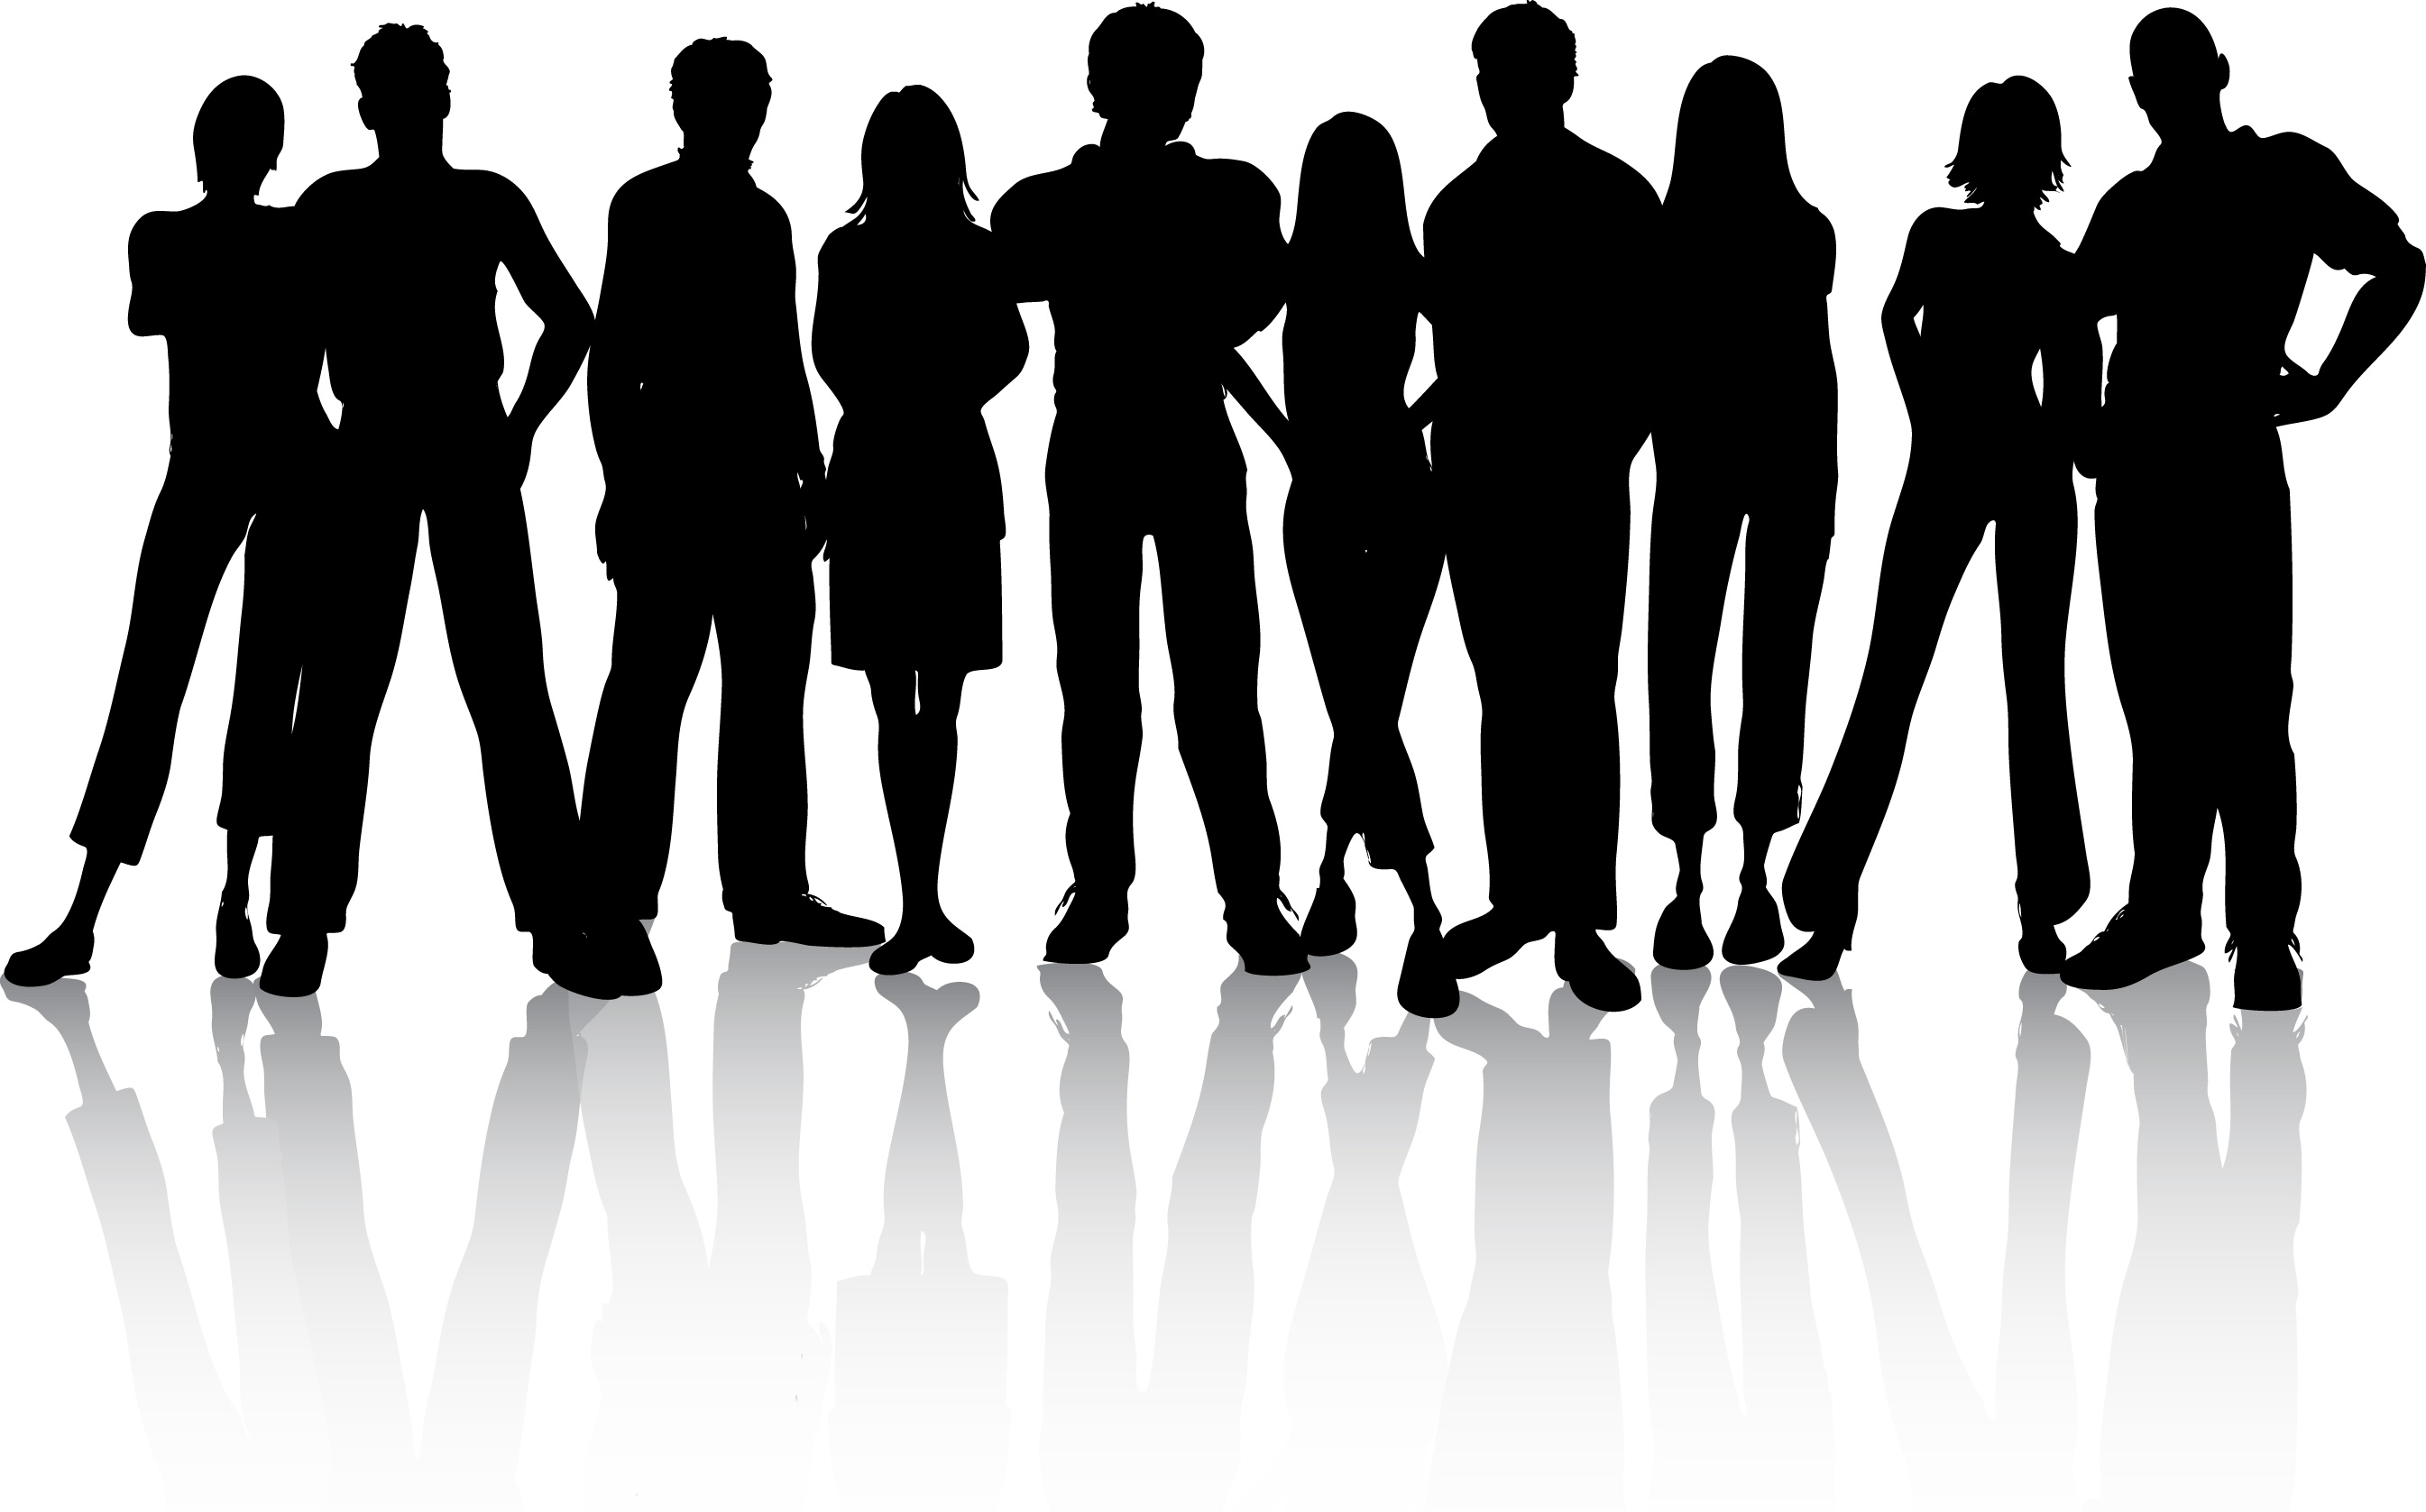 People clip art silhouette free clipart images.